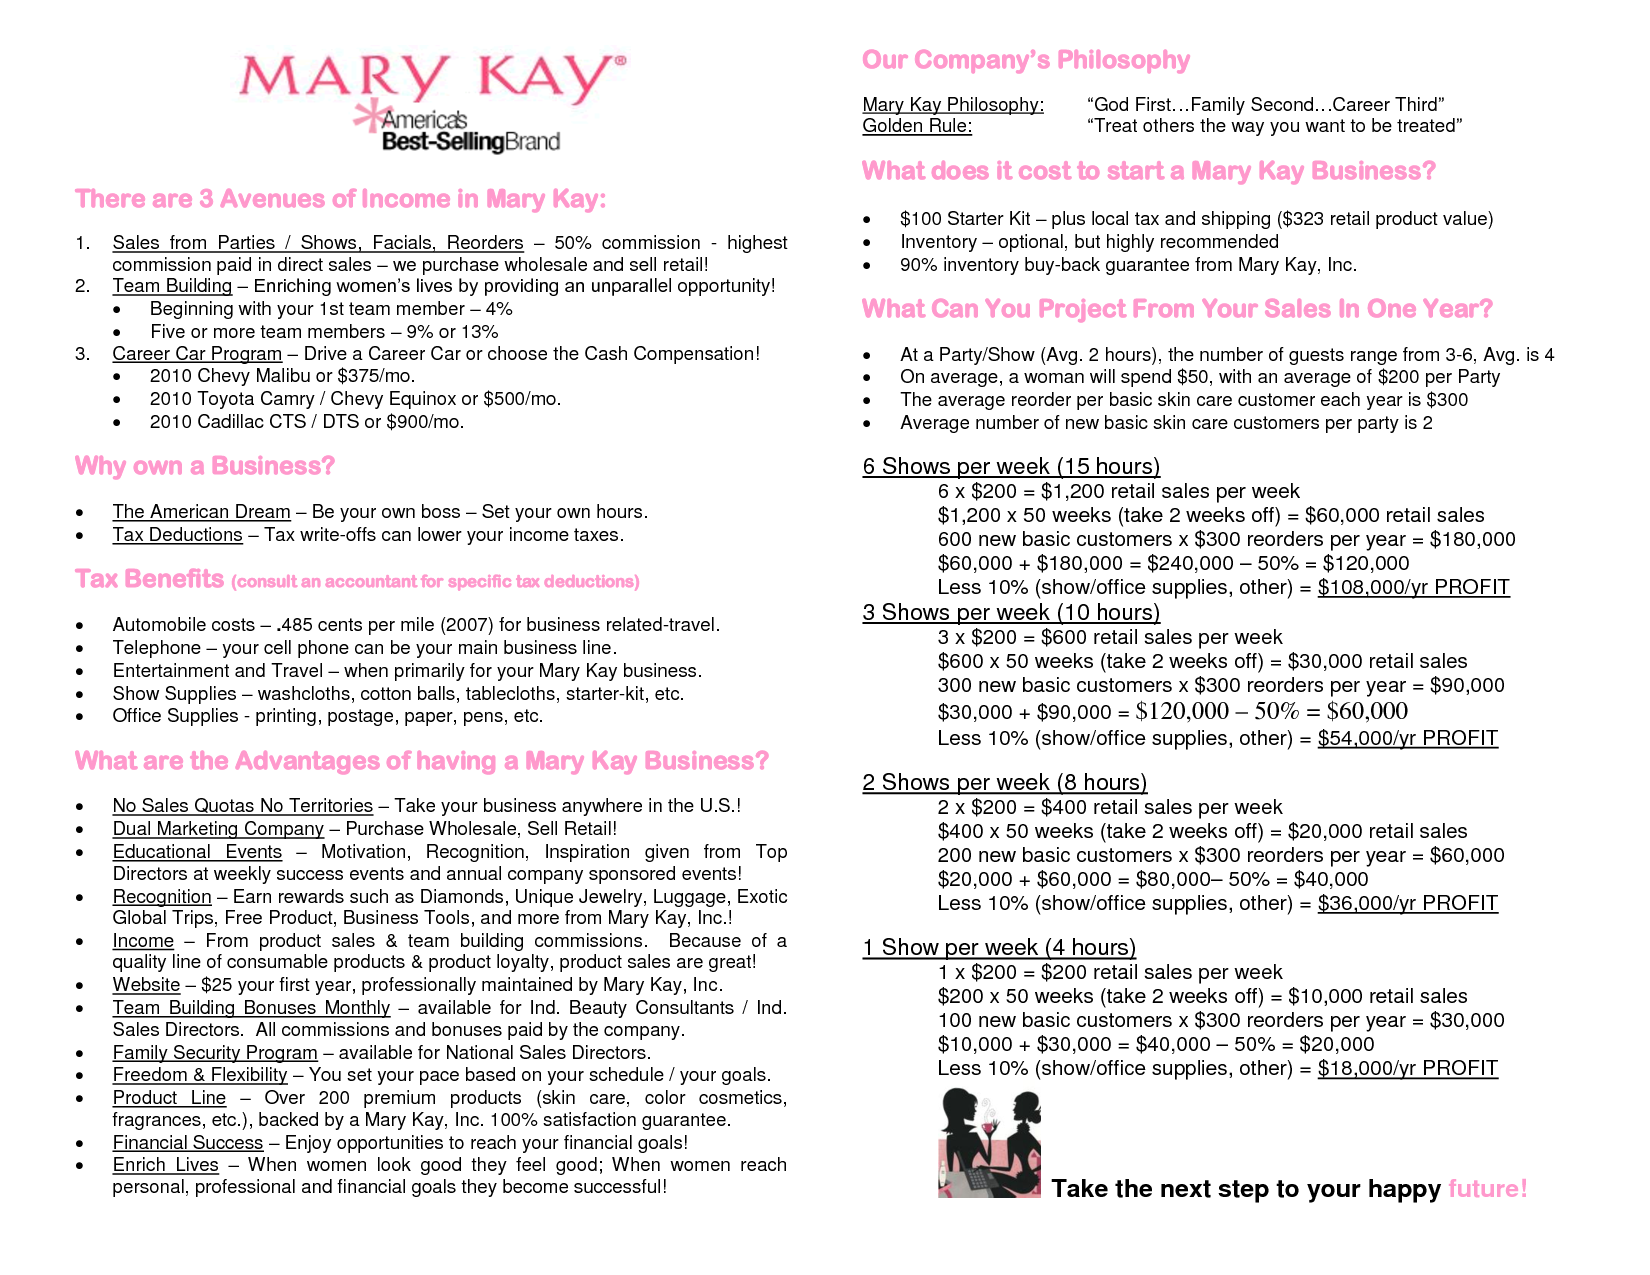 mary kay business plan this marketing plan presents an outline of a mary kay business mk. Black Bedroom Furniture Sets. Home Design Ideas